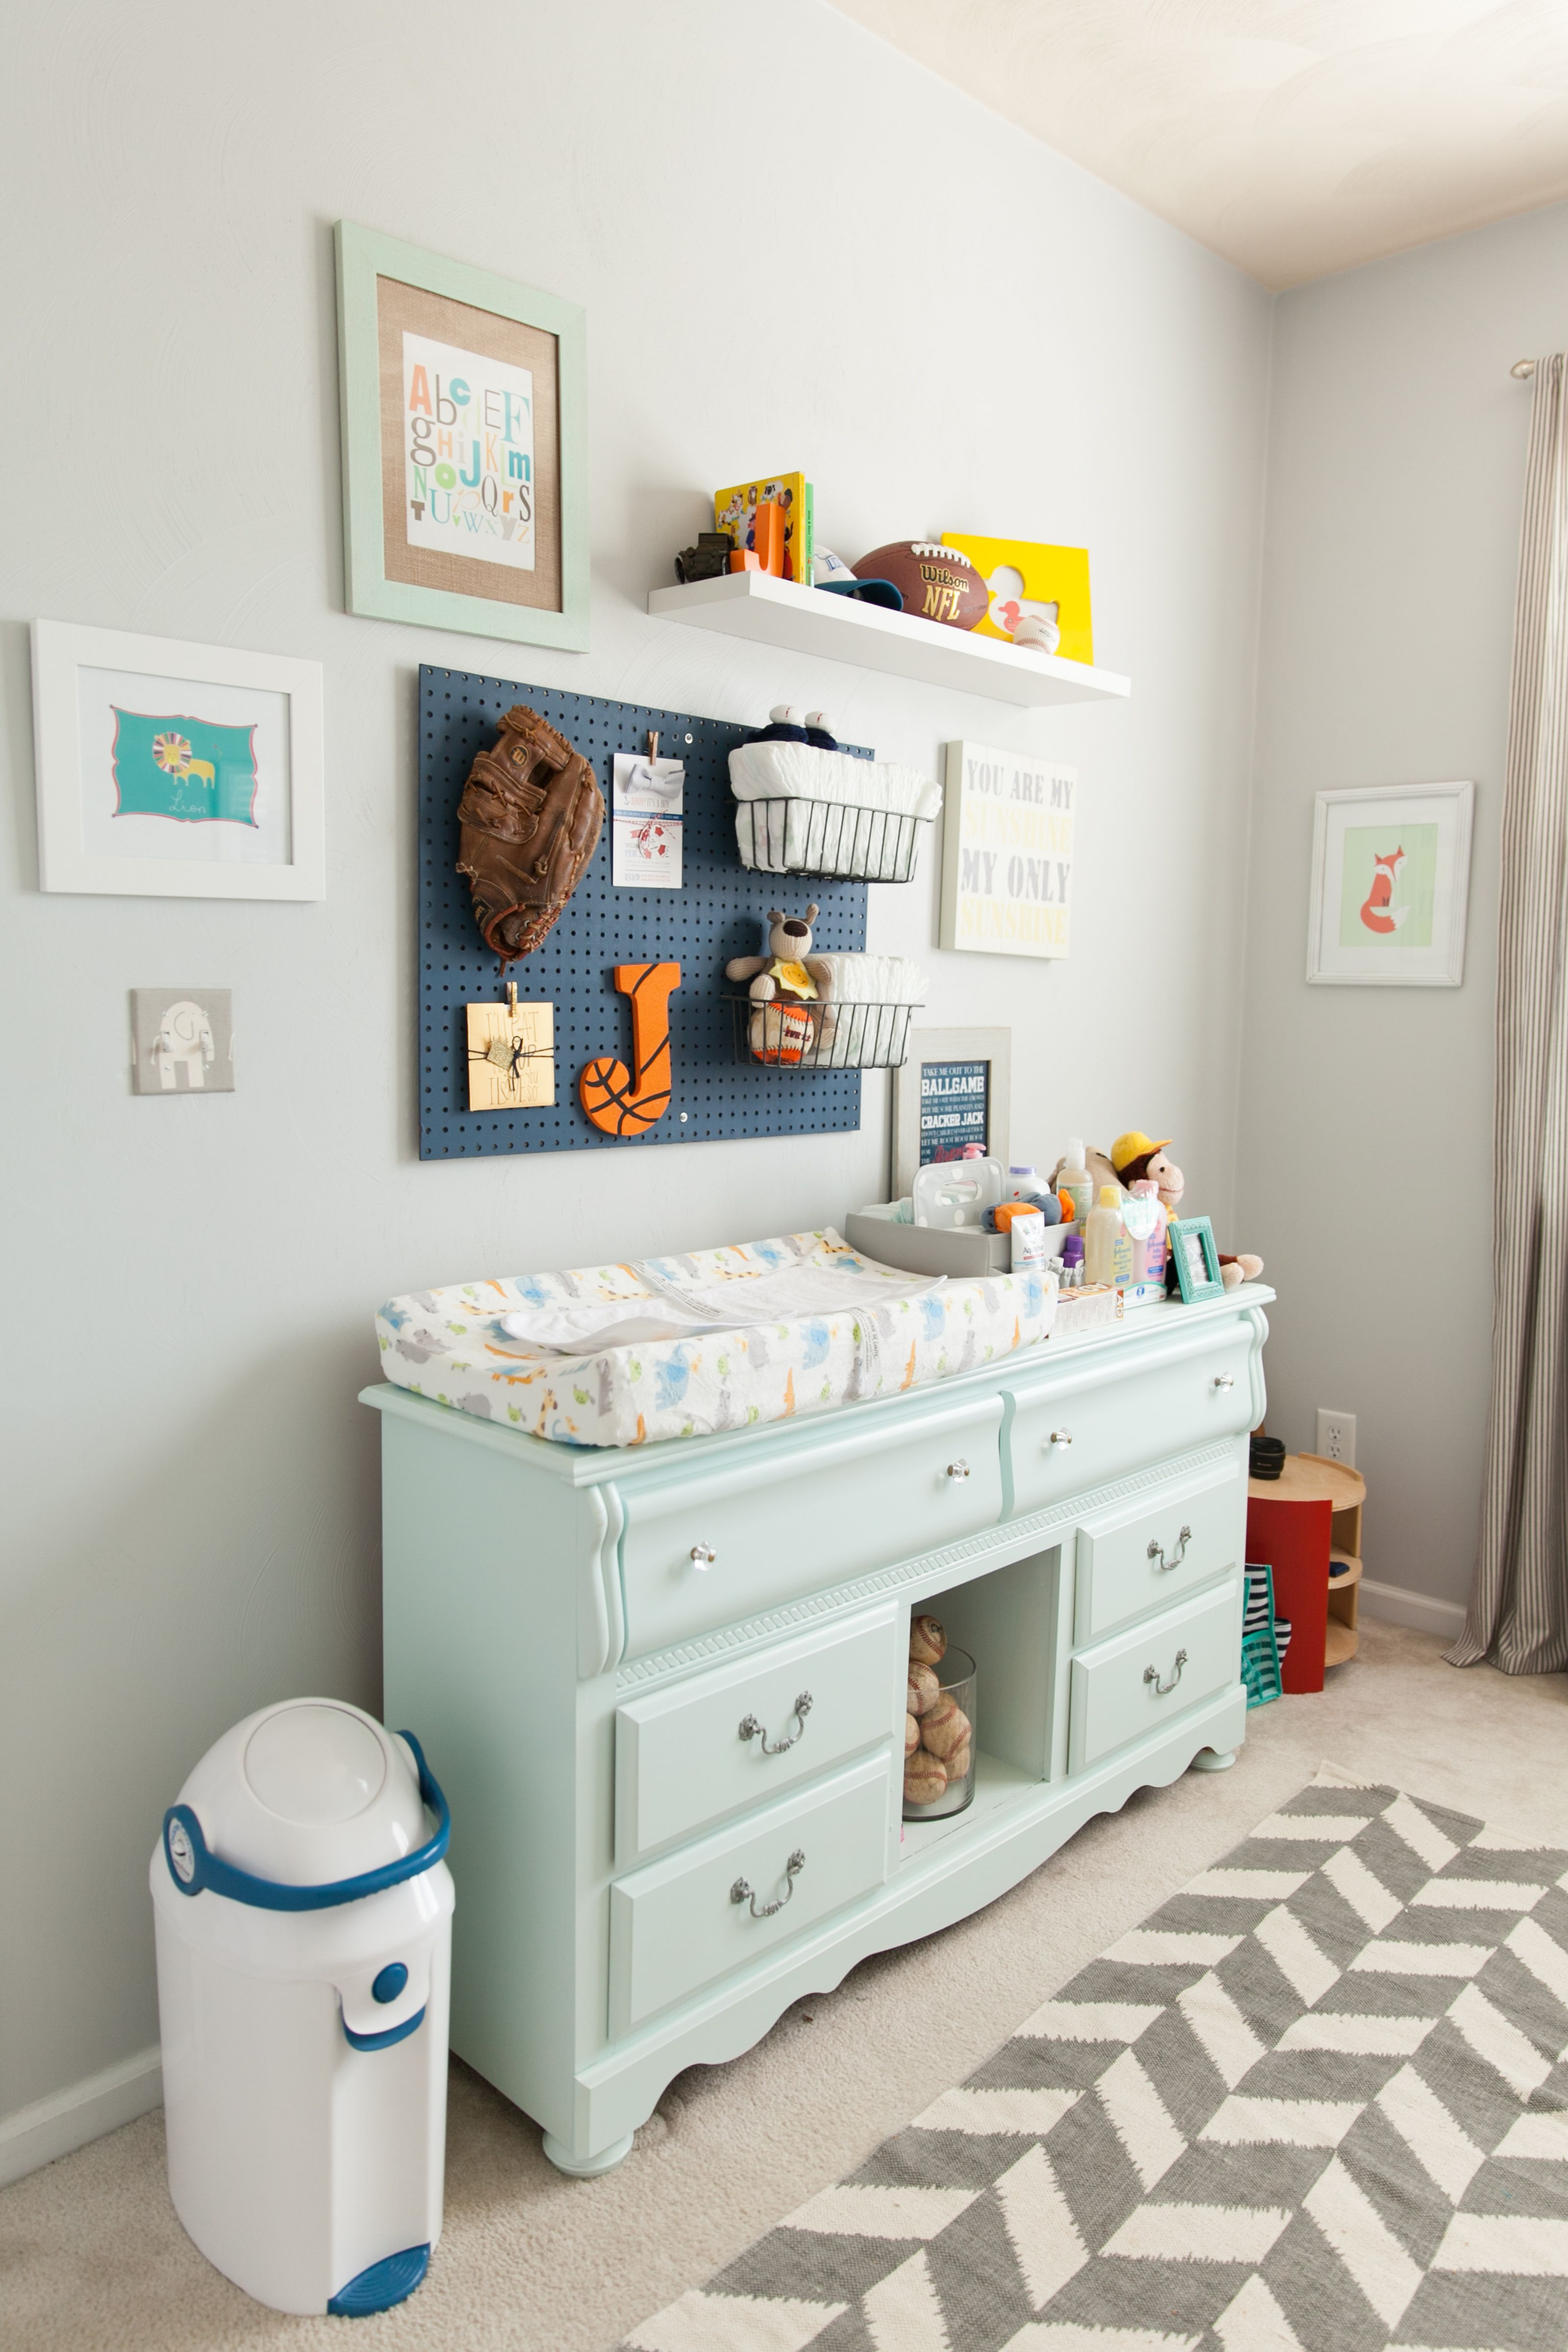 14 genius toy storage ideas for your kids room diy kids bedroom 14 genius toy storage ideas for your kids room diy kids bedroom organization amipublicfo Images